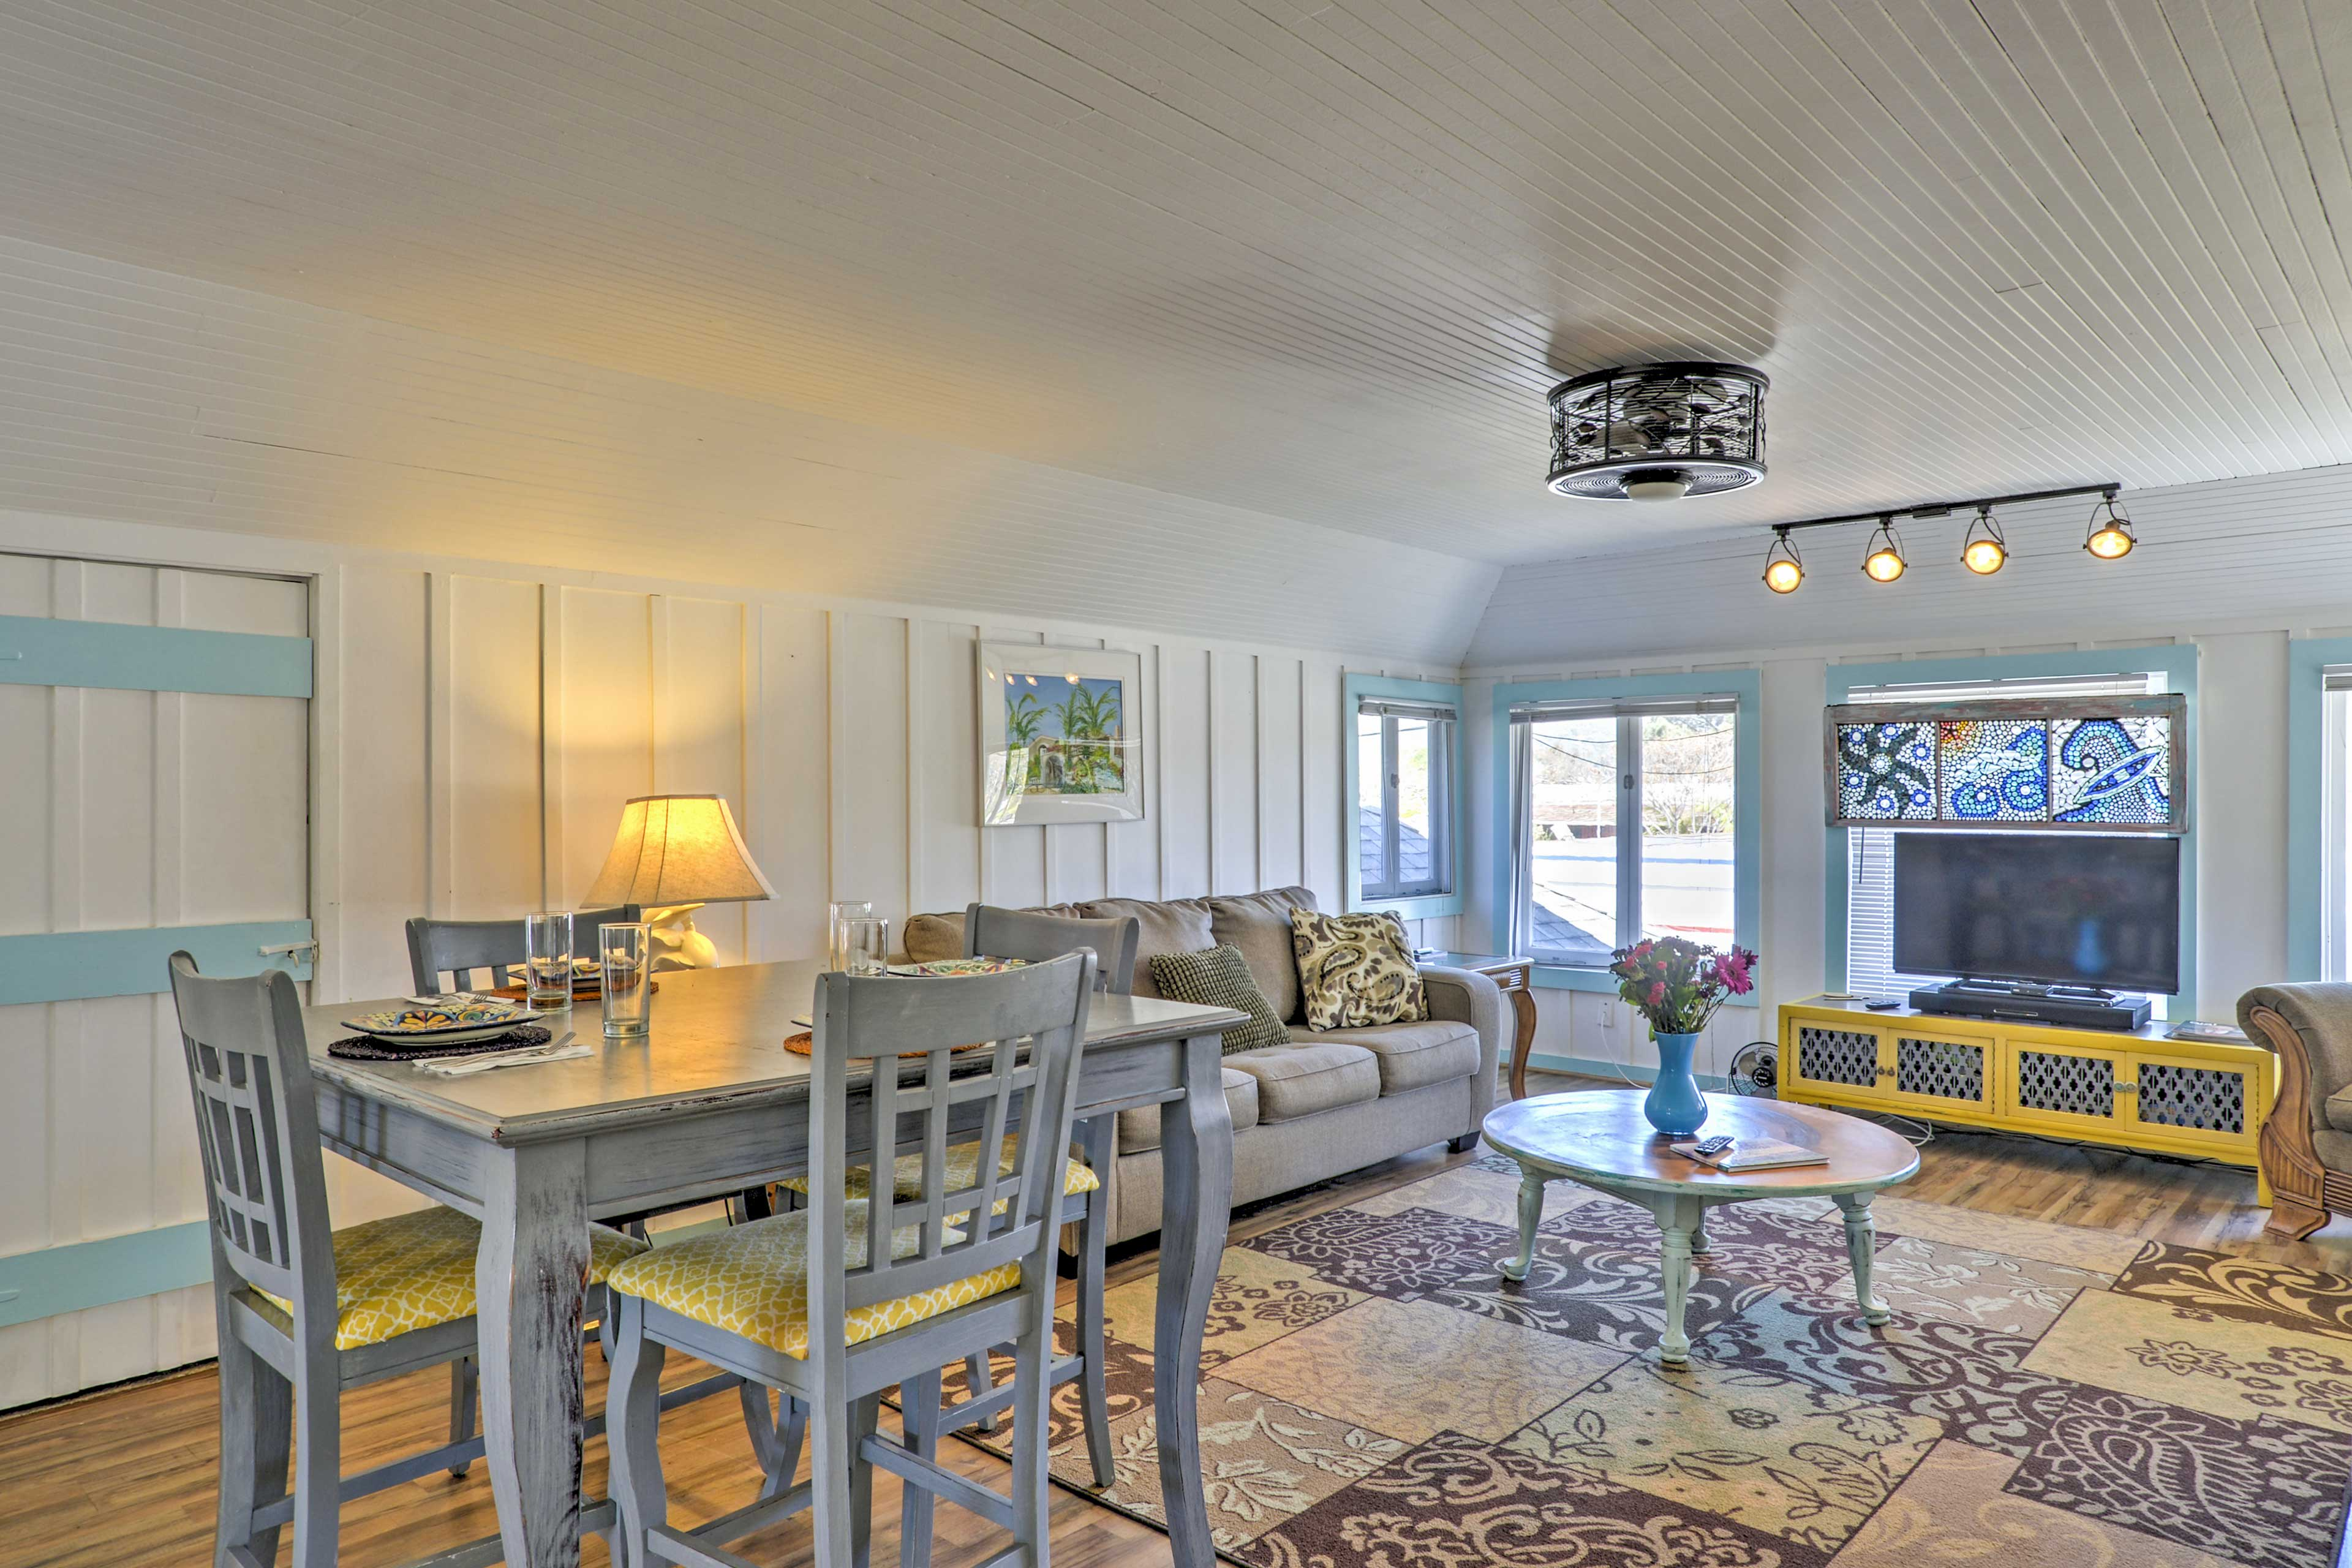 The stylish home boasts 900 square feet of comfortable living space.